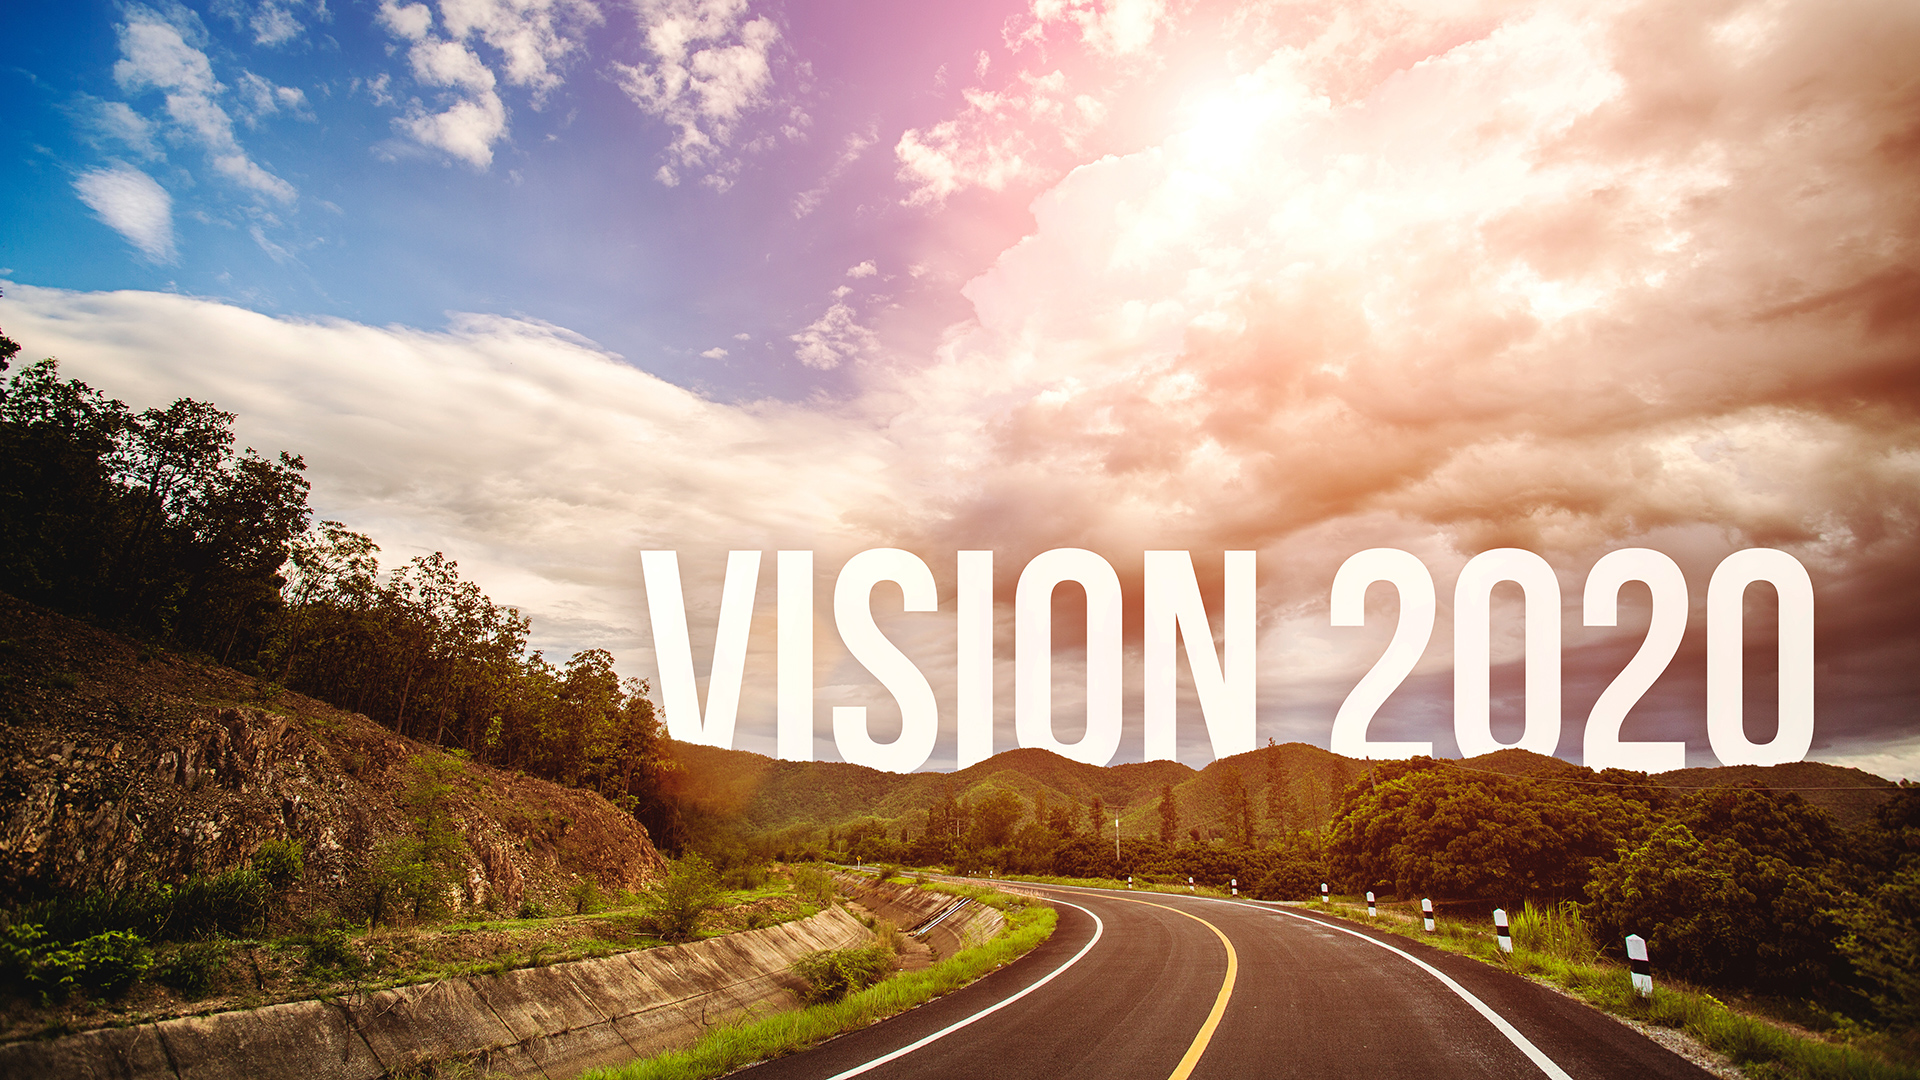 Building A 2020 Vision - Sunday Dispatch - Jerad Hill